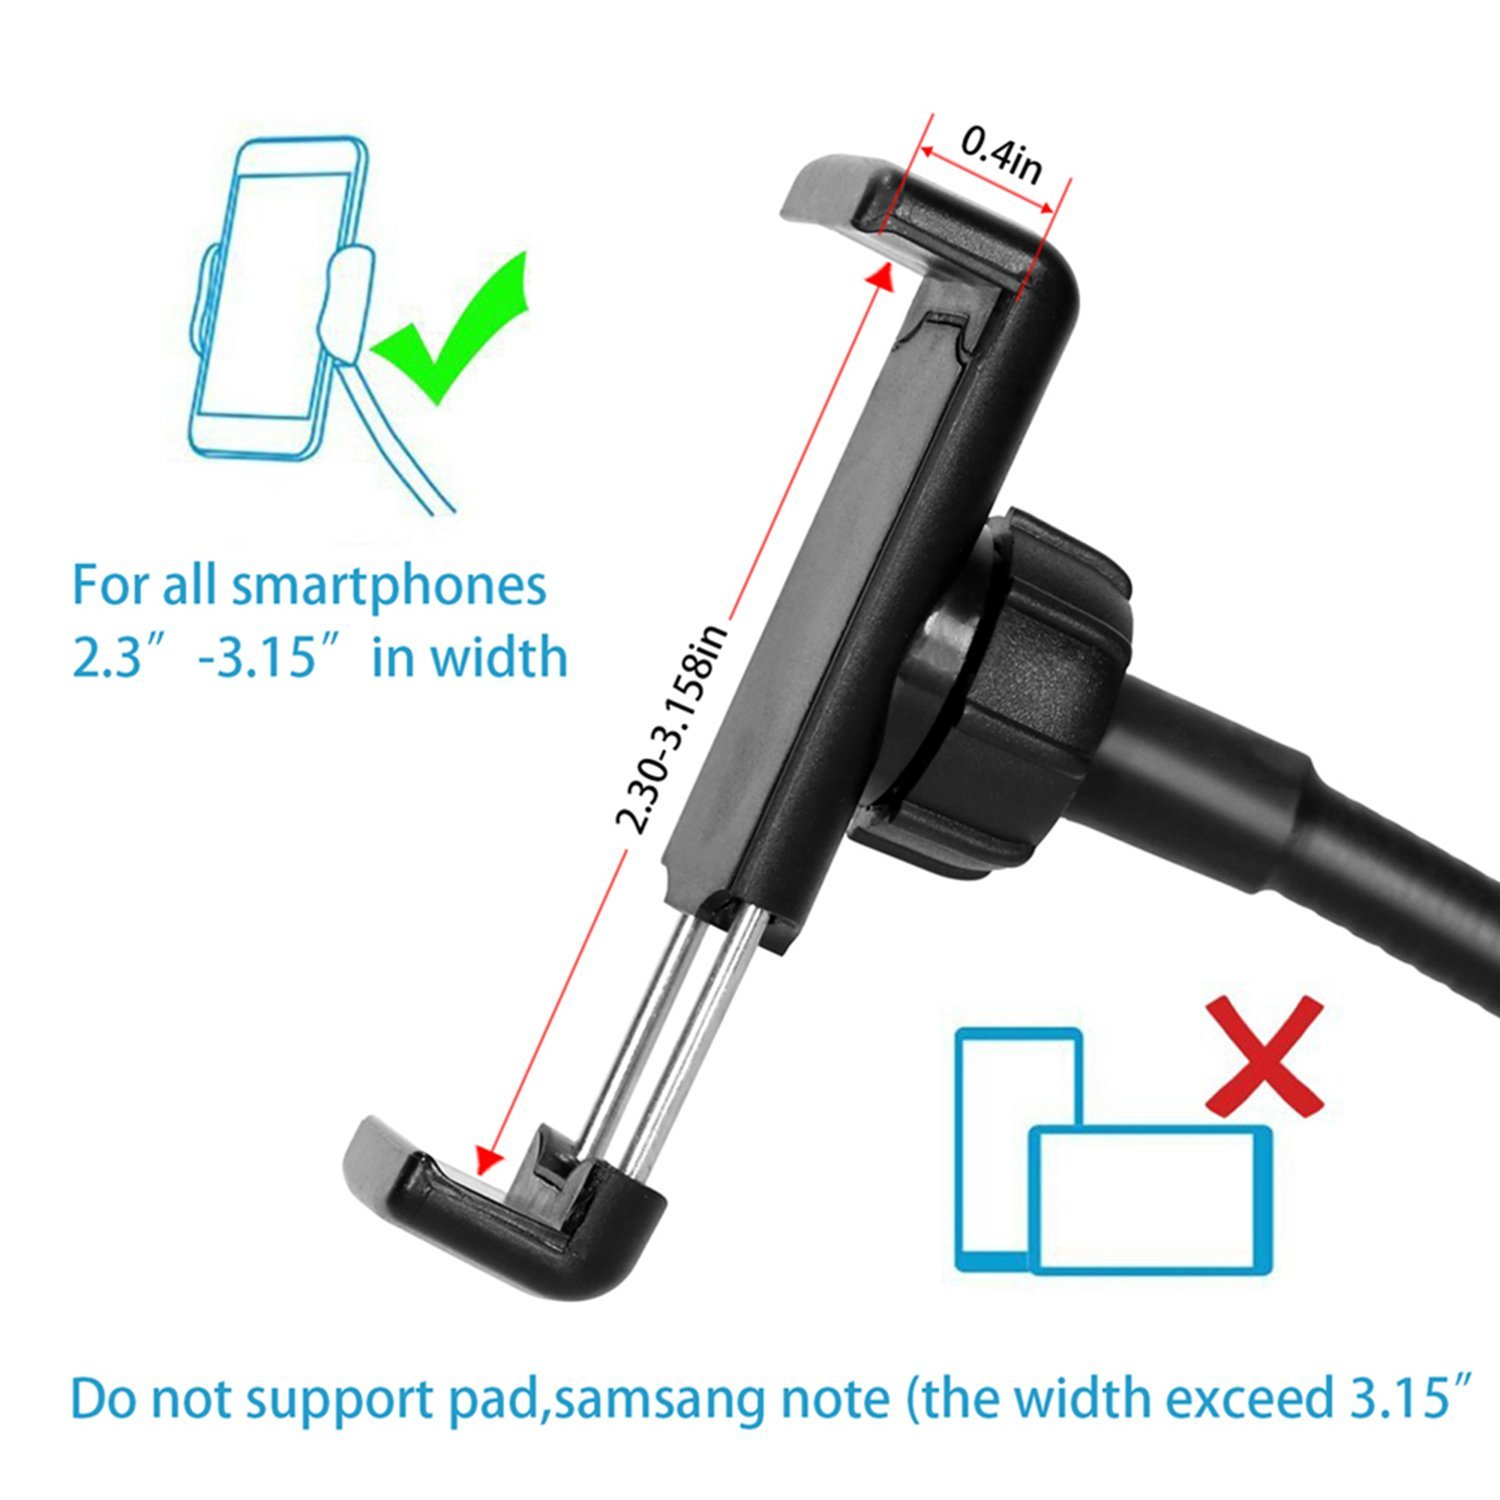 New innovative 2018 live streaming 9 modes selfie ring light with phone clamp